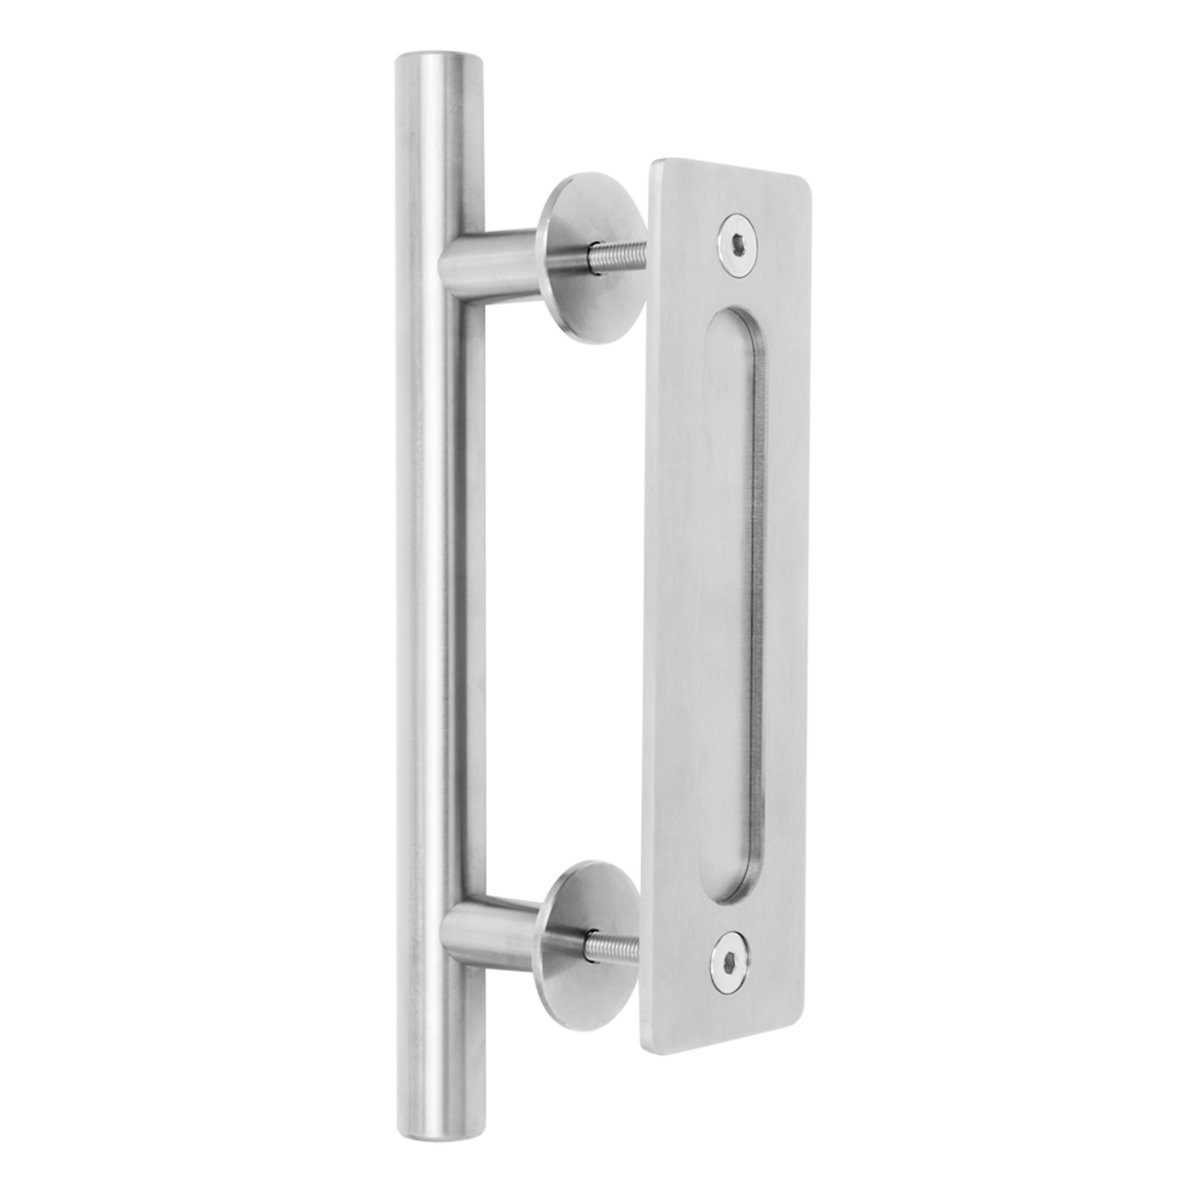 12 Stainless Sliding Barn Door Handle with Flh Pull Set Heavy Duty Anti-Rt